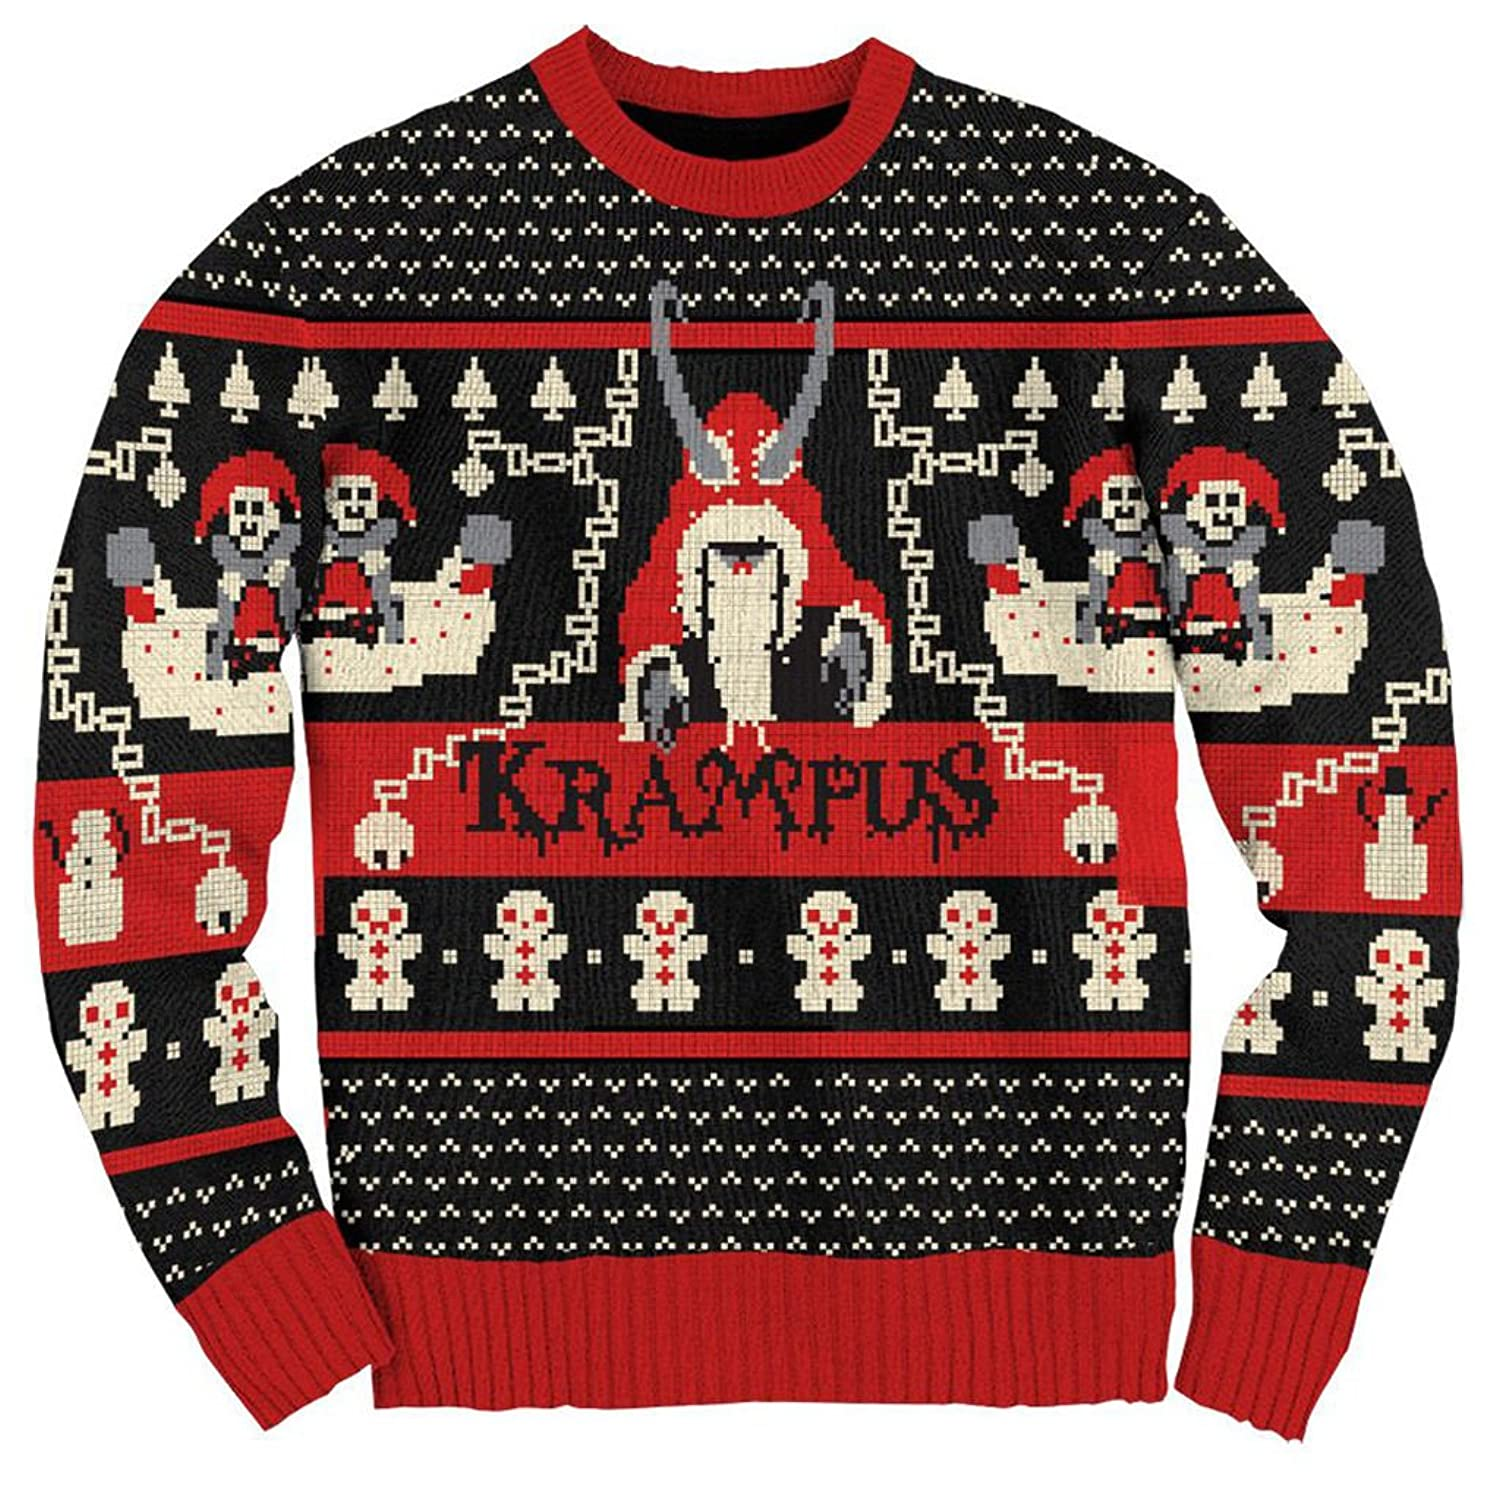 Amazoncom Krampus Knit Ugly Christmas Sweater Clothing